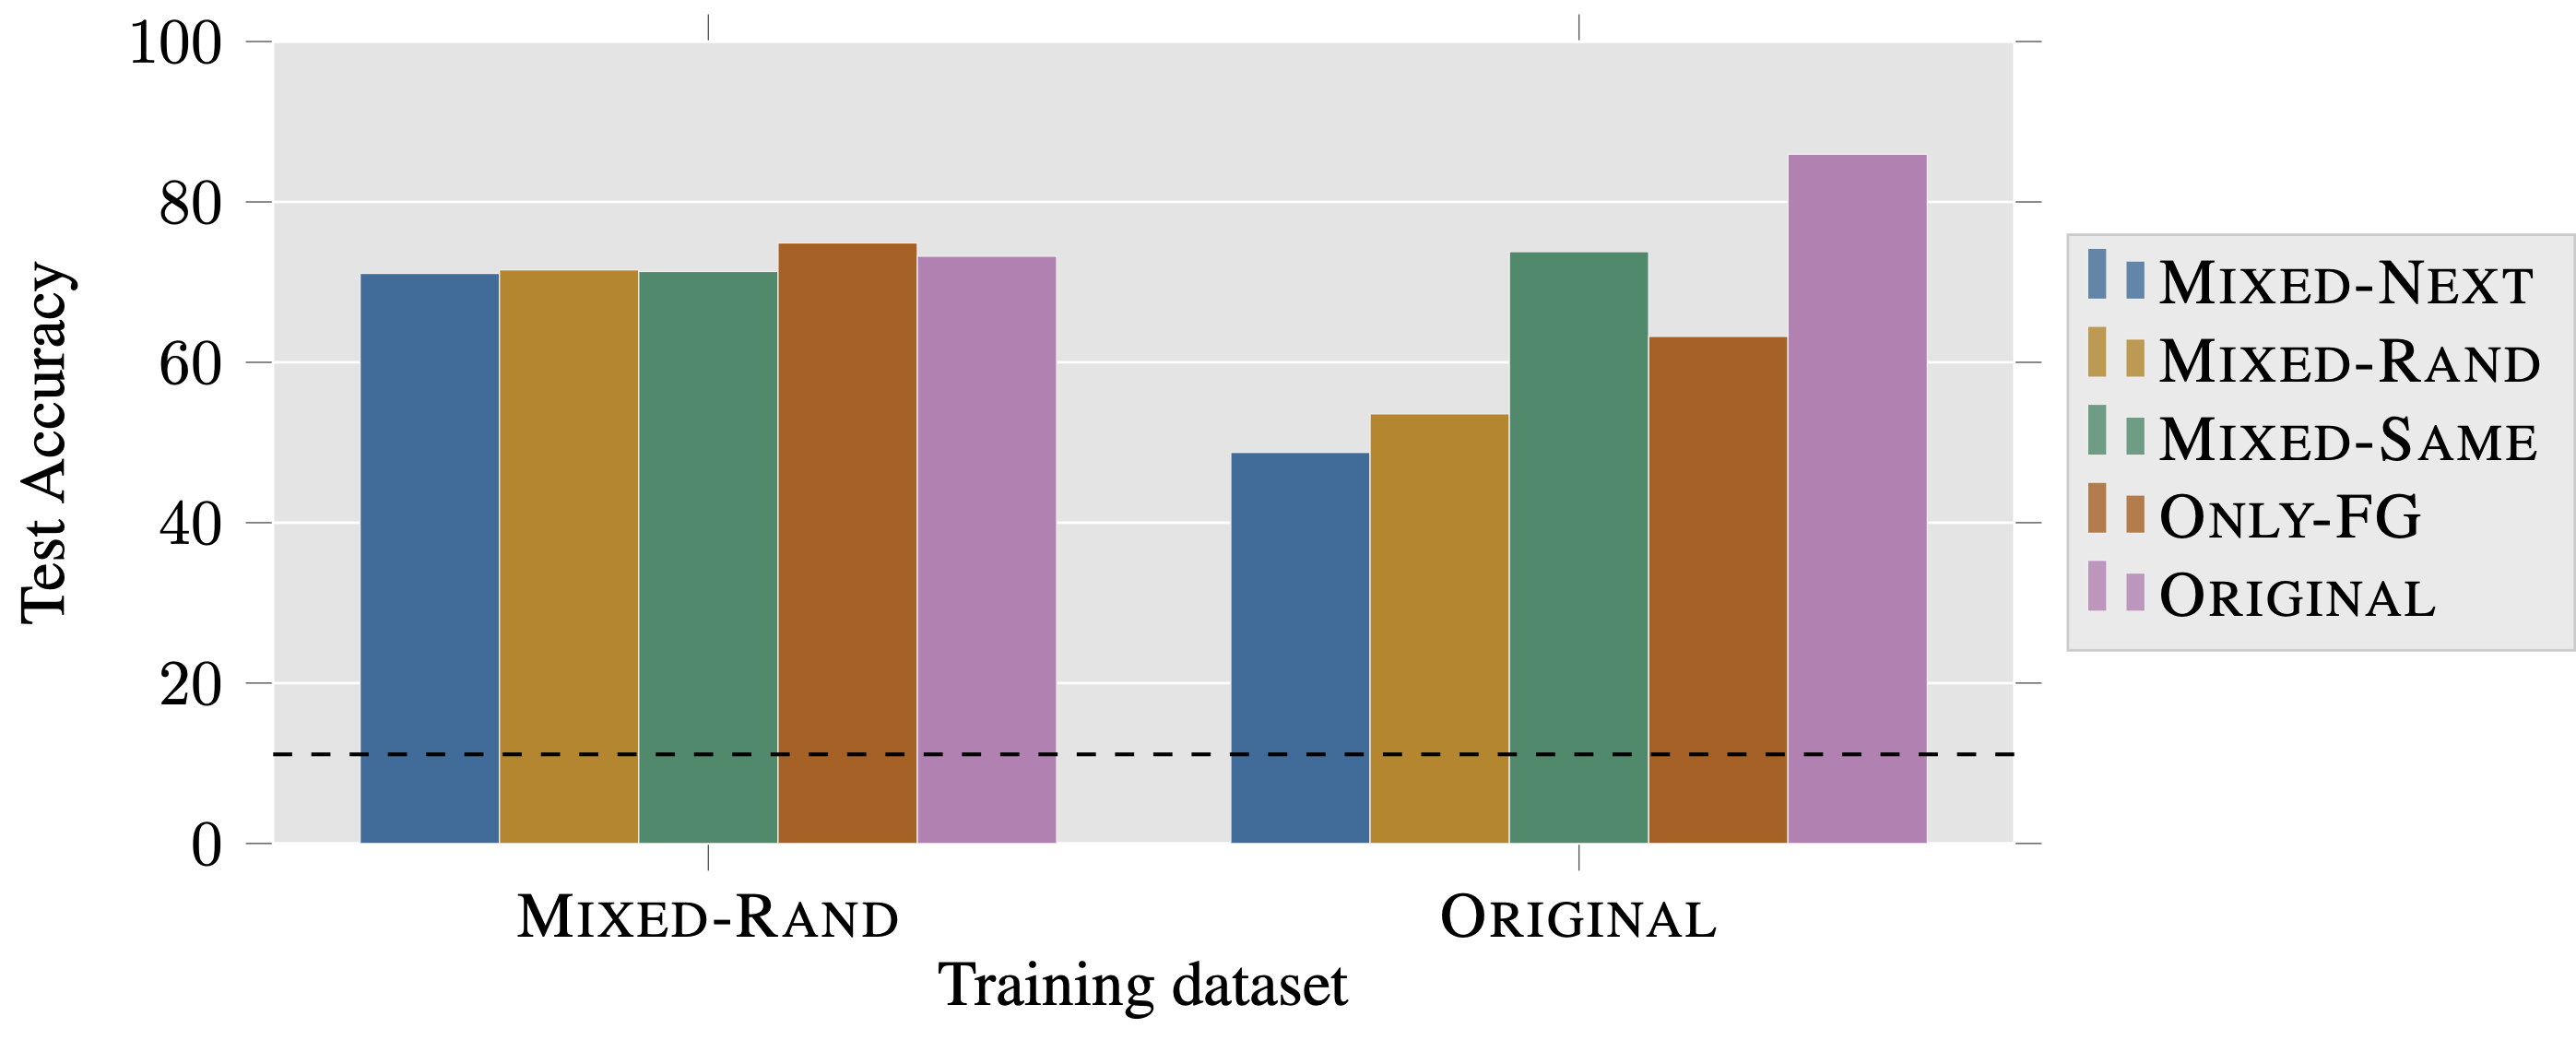 Training on Mixed-Rand and evaluating on other datasets